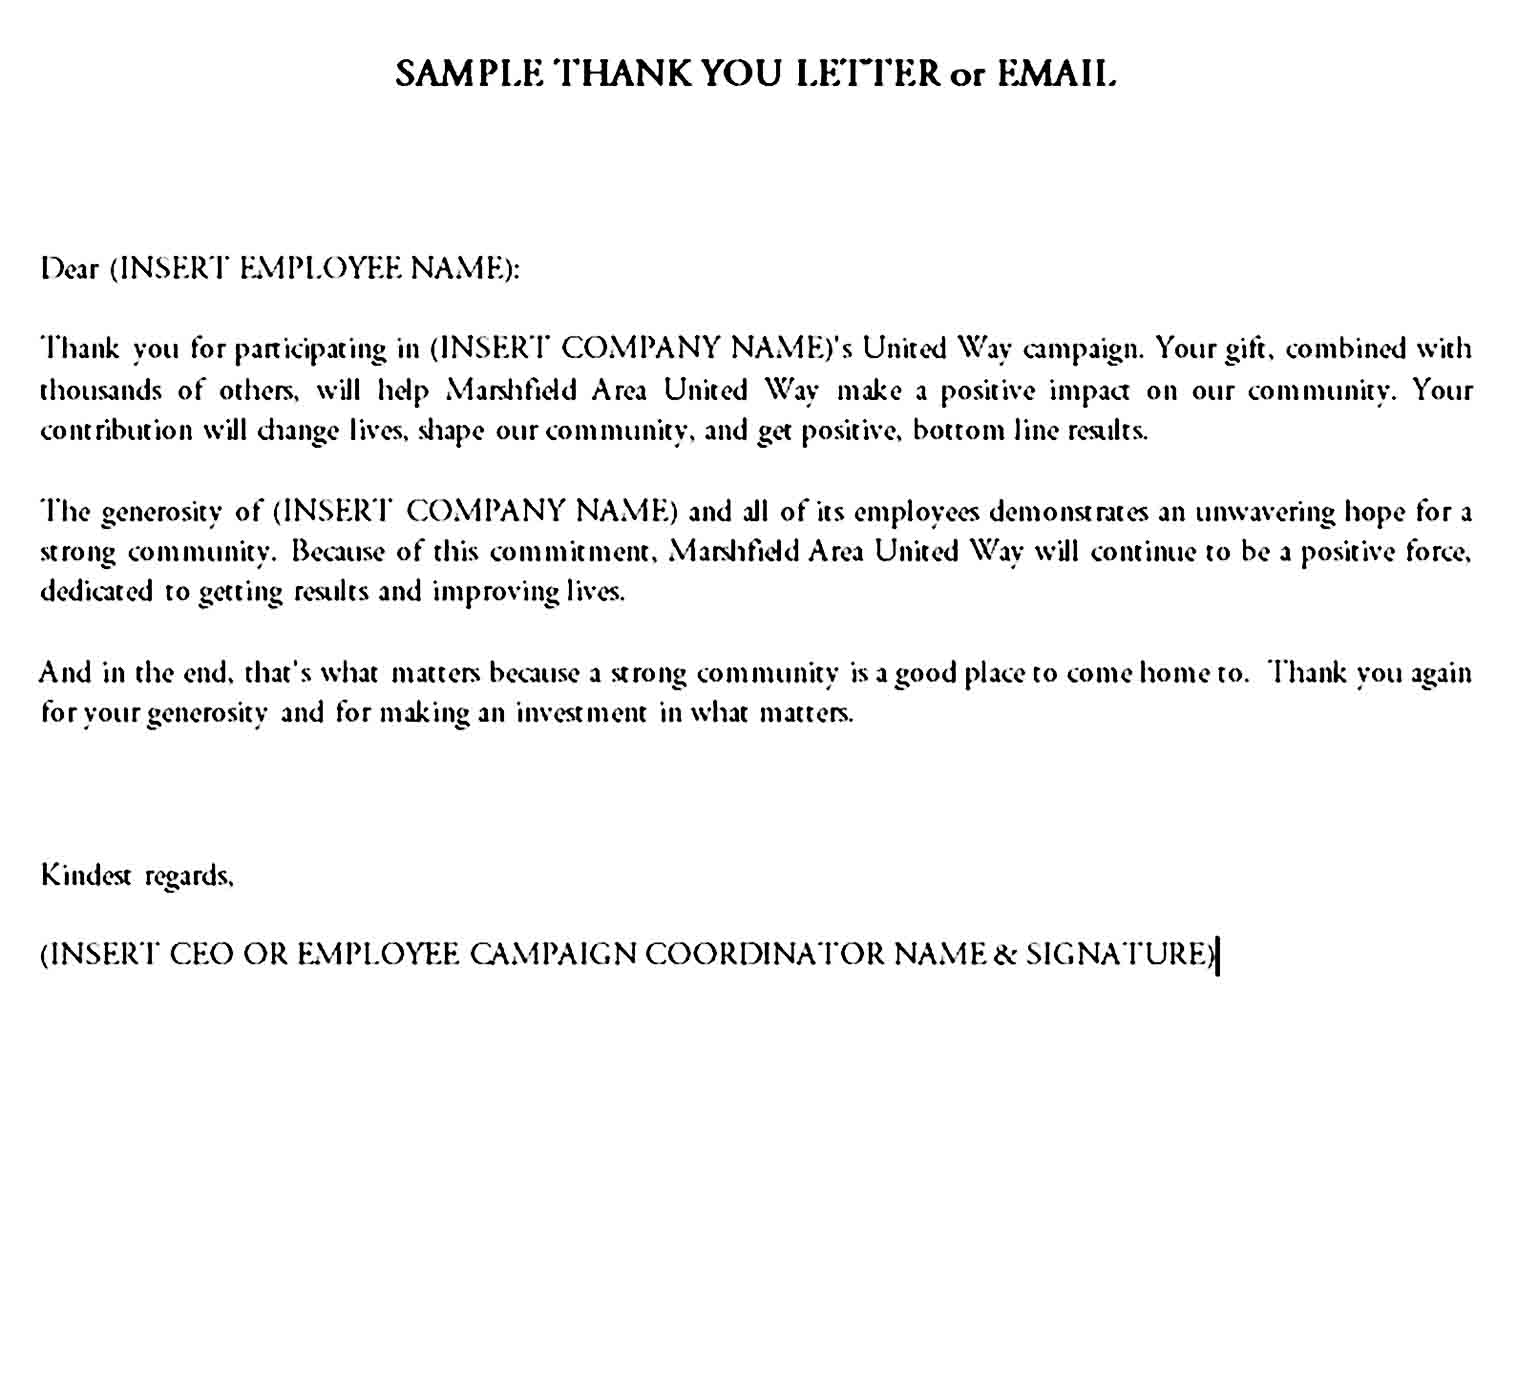 Thank you letter 11